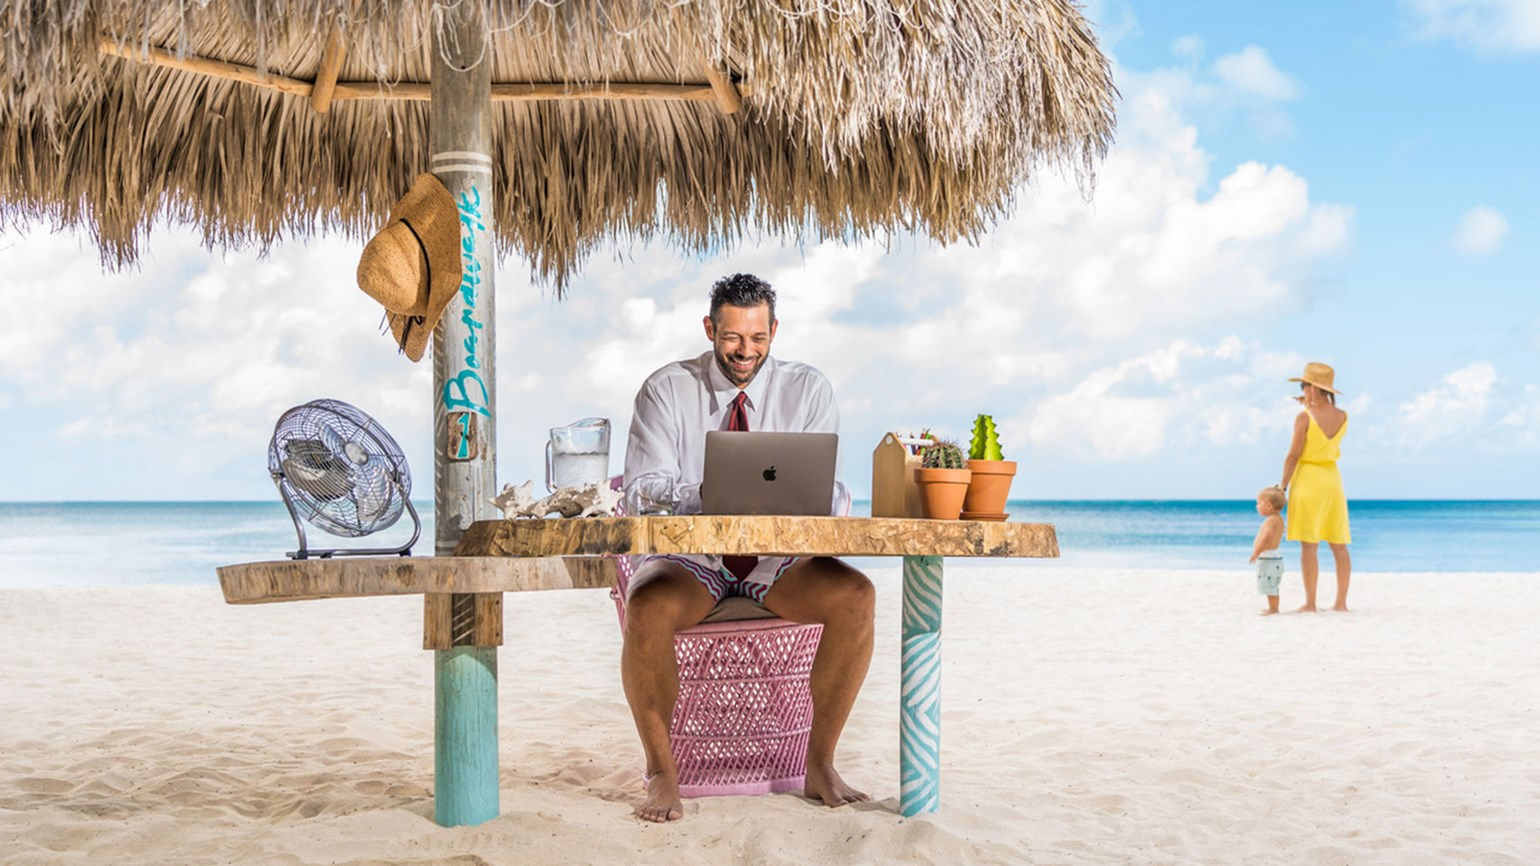 A workstation that encourages toes in the sand? This resort has the answer.